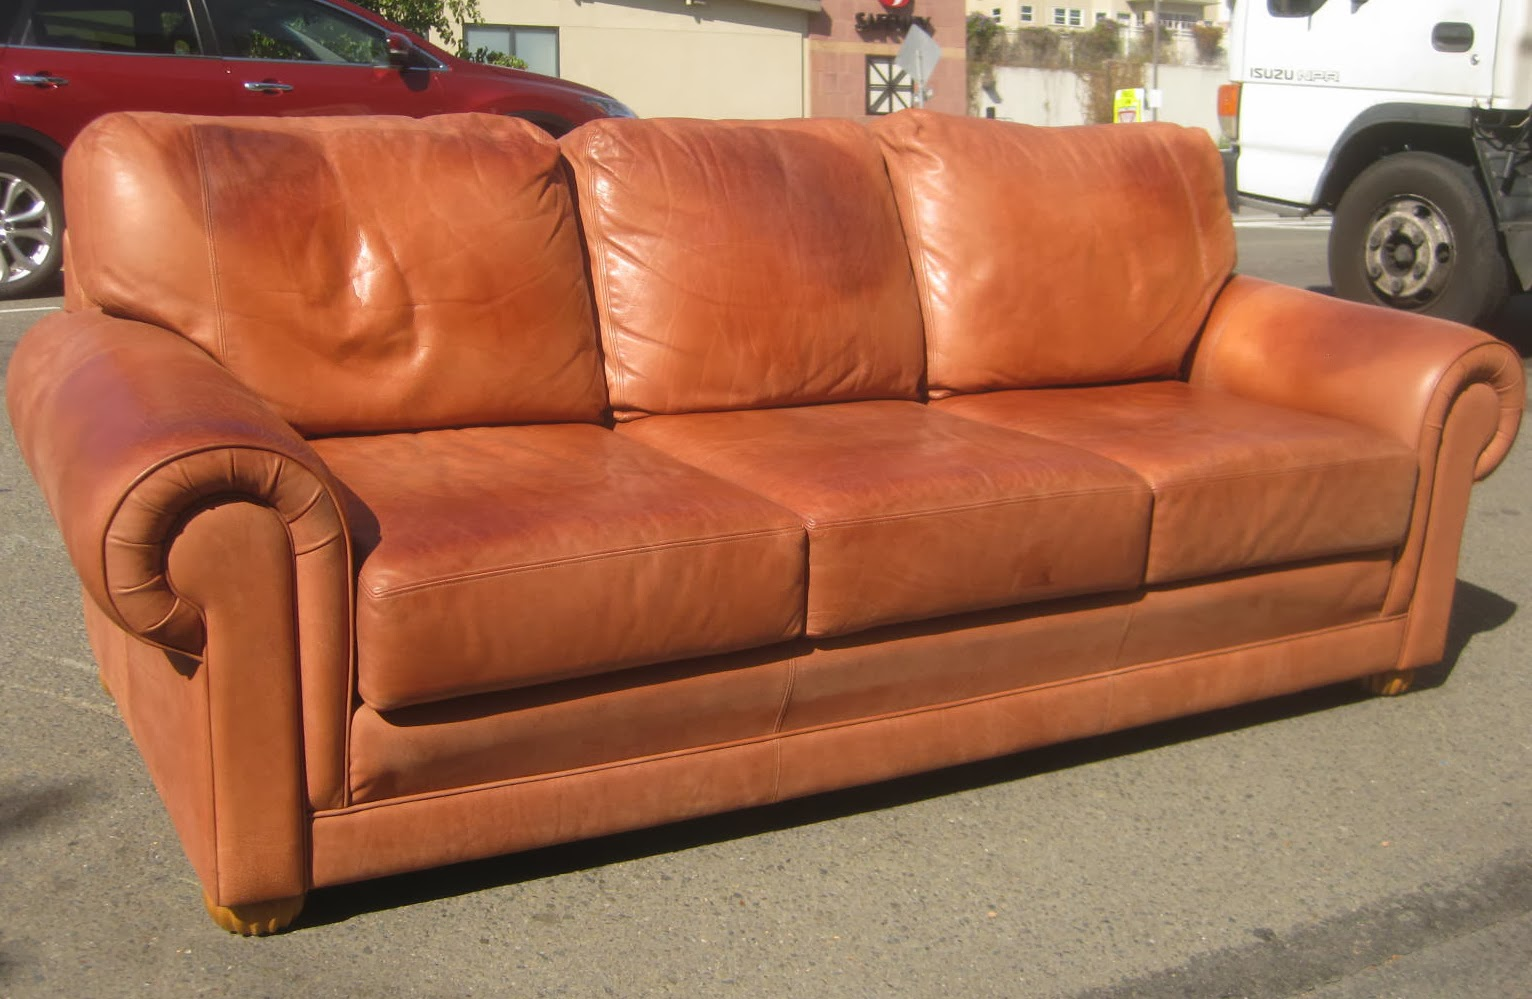 Soft Leather Sofa New Or Black Modern Soft Leather Sectional